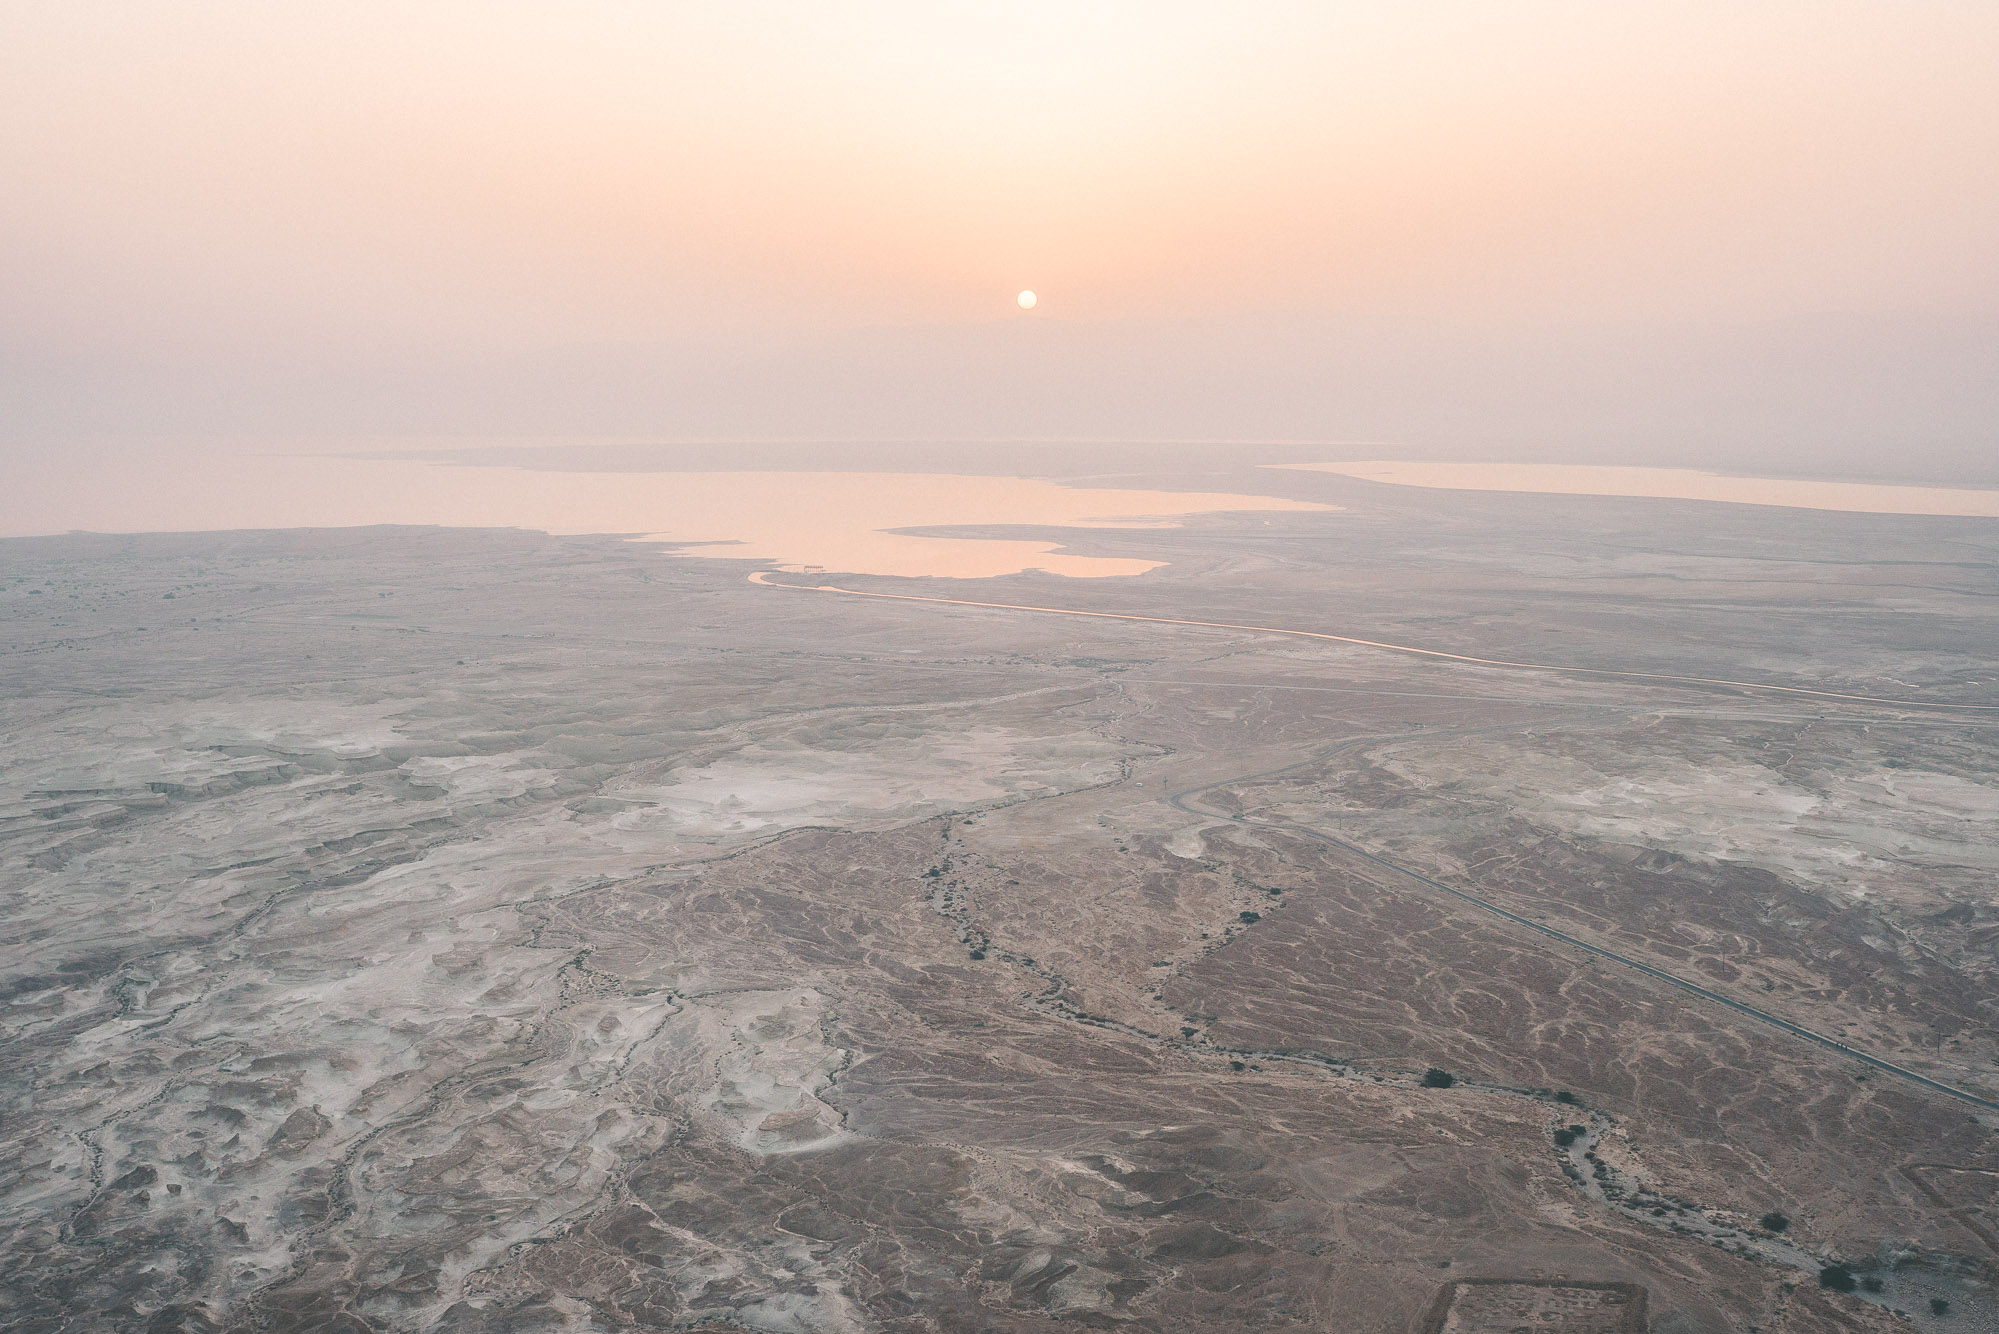 Sunrise over Masada views of the dead sea lowest point on earth find us lost